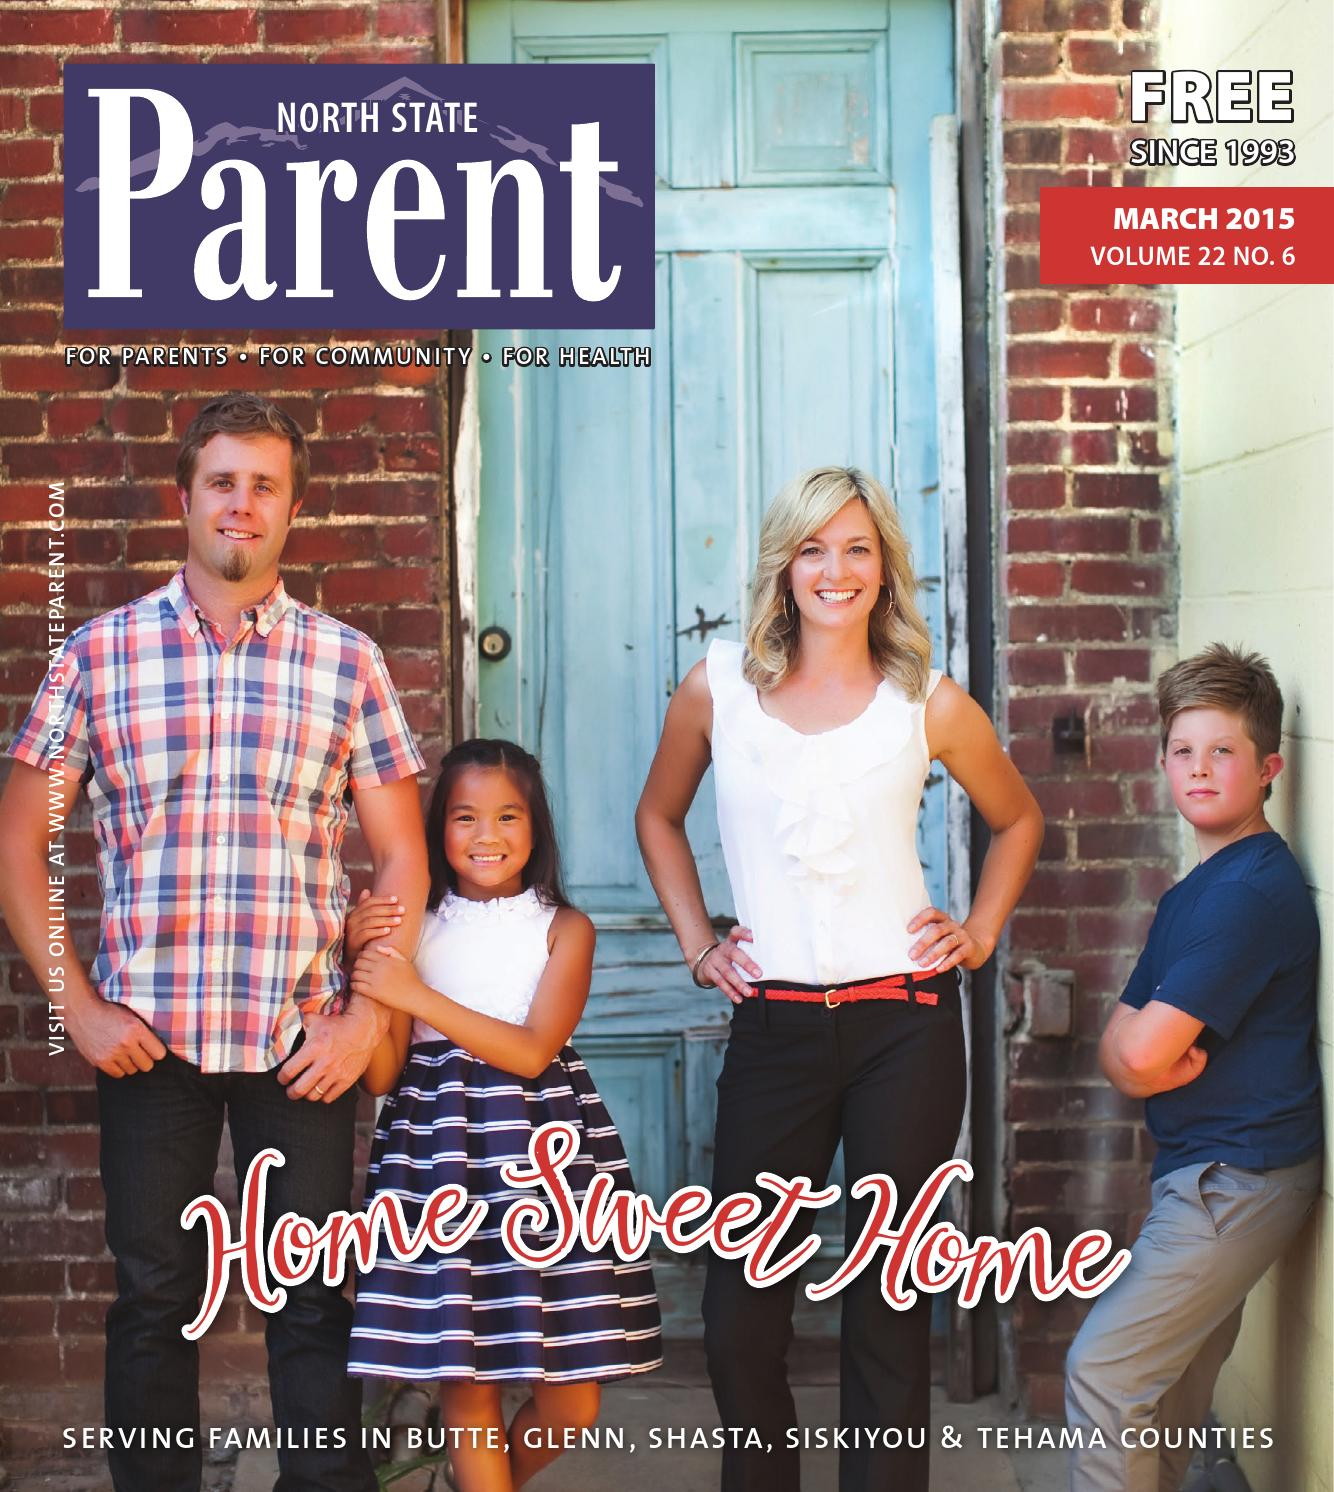 North State Parent March 2015 by North State Parent magazine - issuu